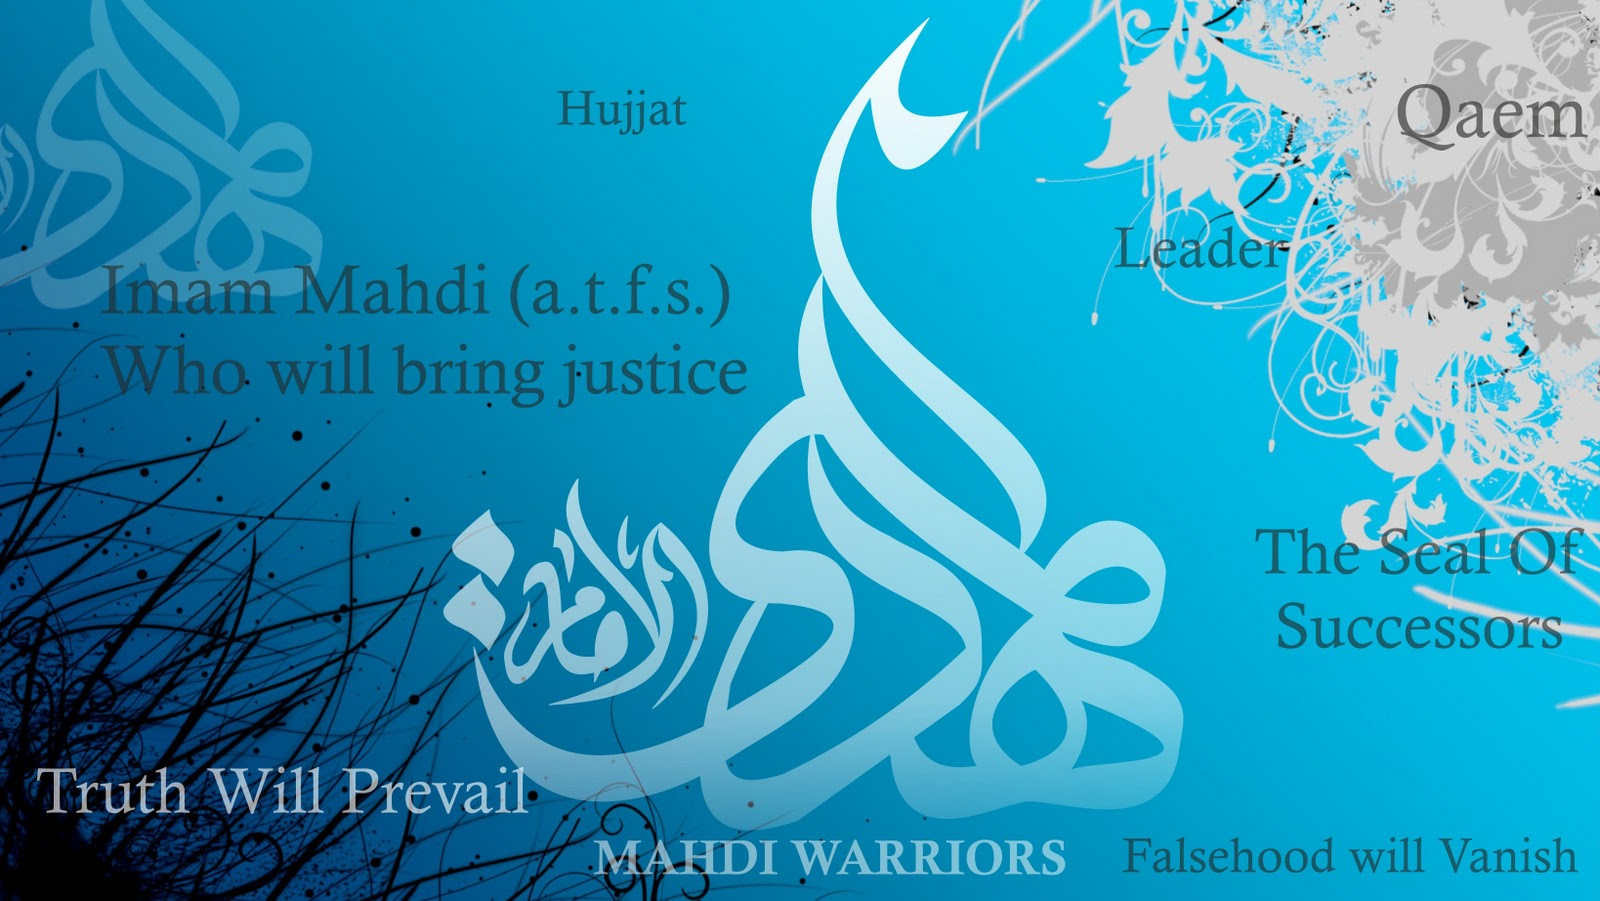 newest hd pics: TEAM 110 Wallpapers: Imam Mahdi (a.t.f.s.) Wallpapers